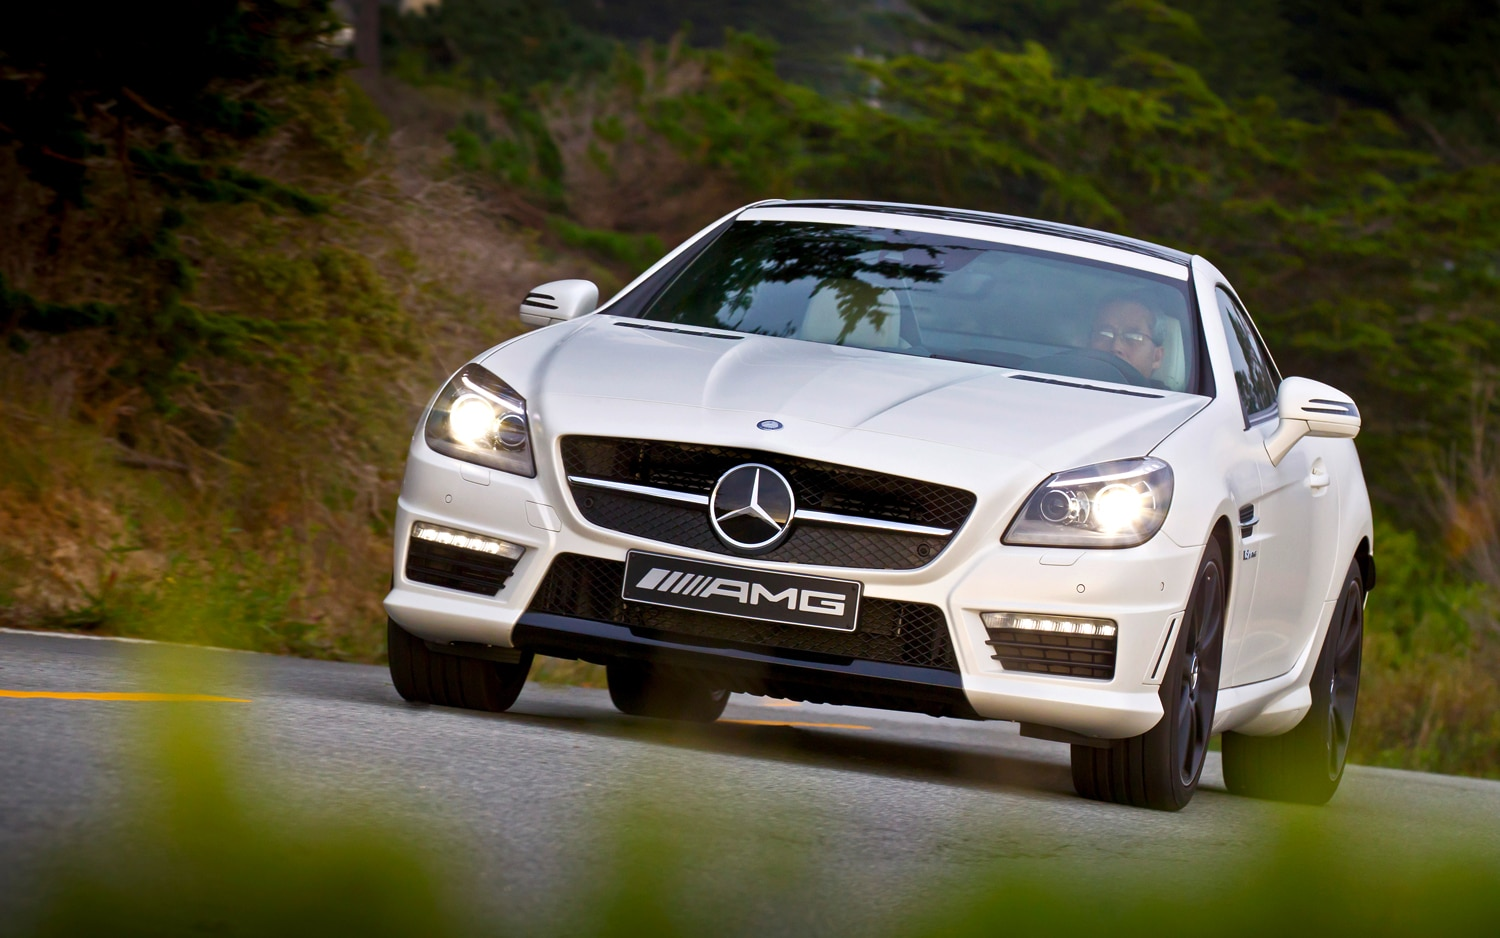 2012 Mercedes Benz SLK55 AMG Front View 21